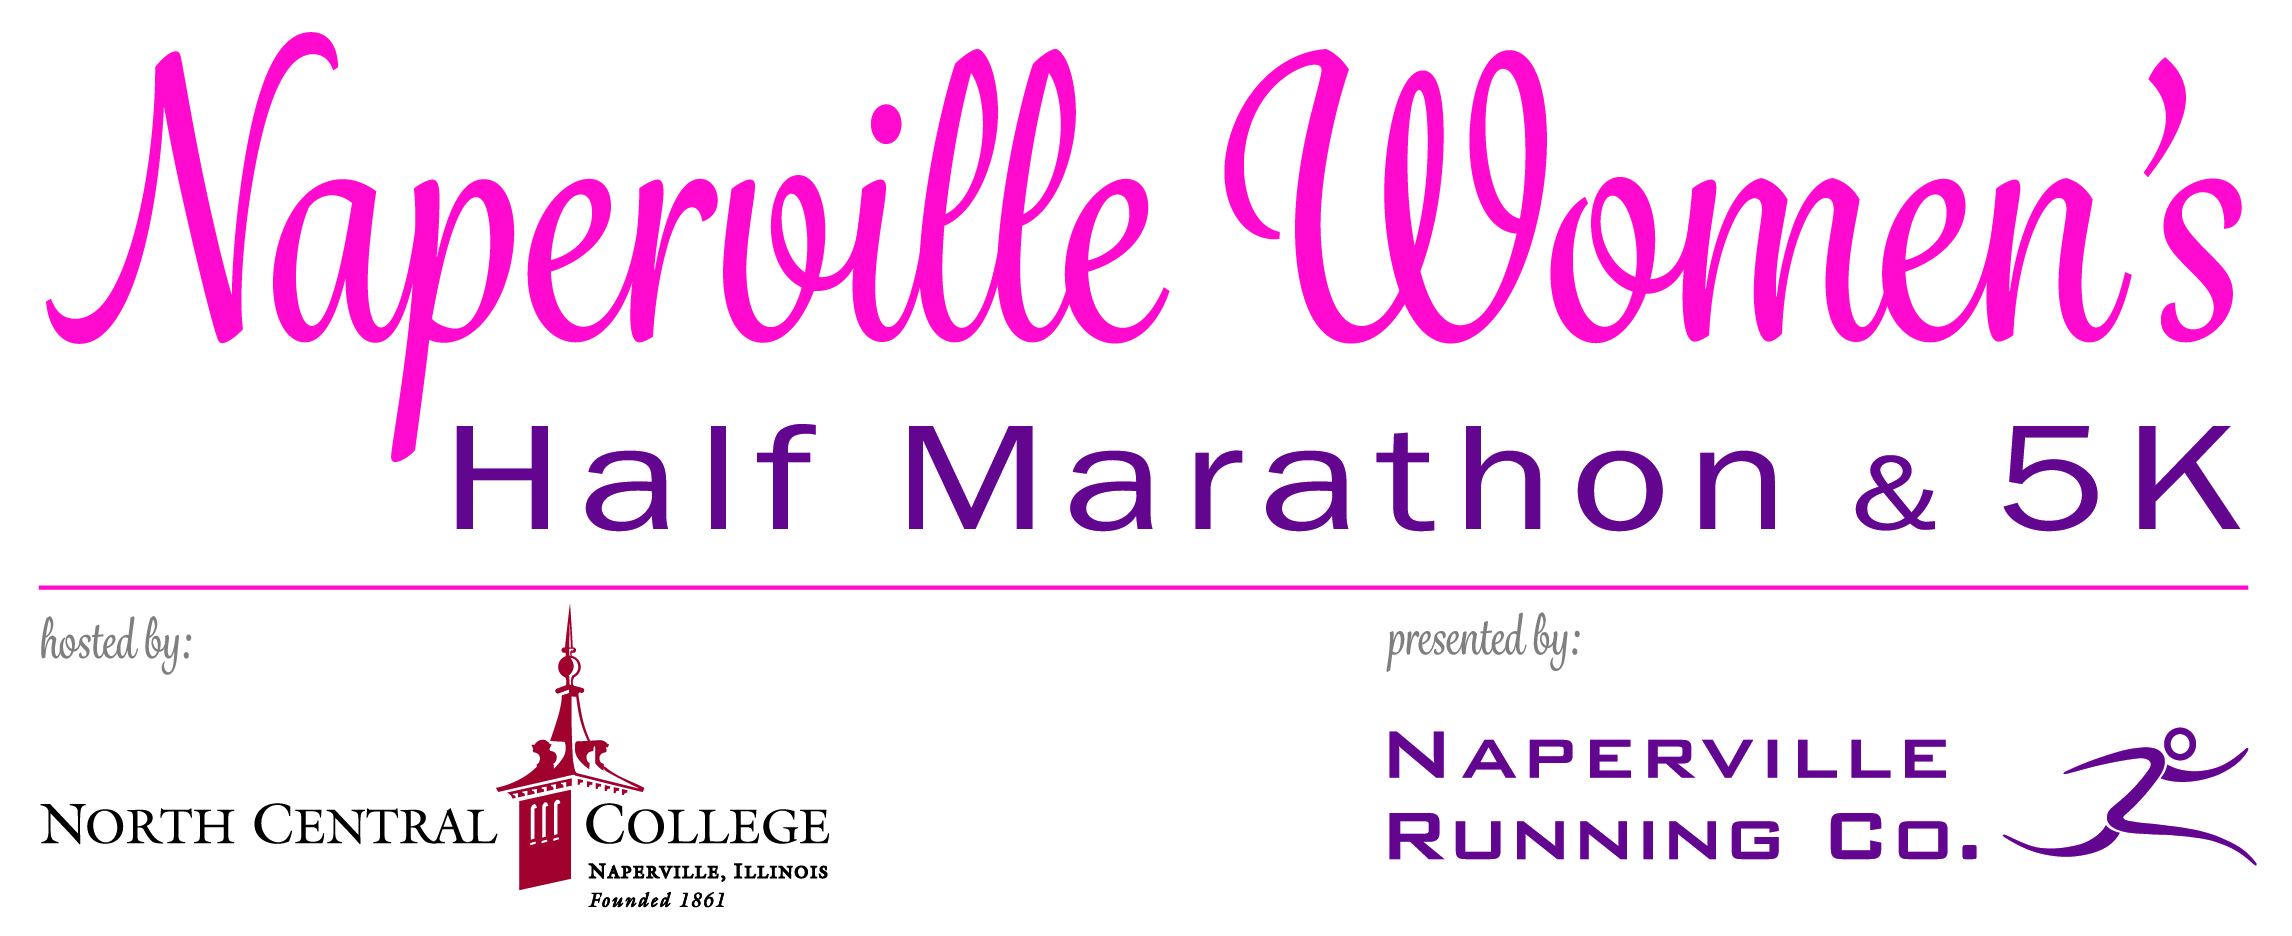 Naperville Hosting New Women's Half Marathon | The Daily Herald